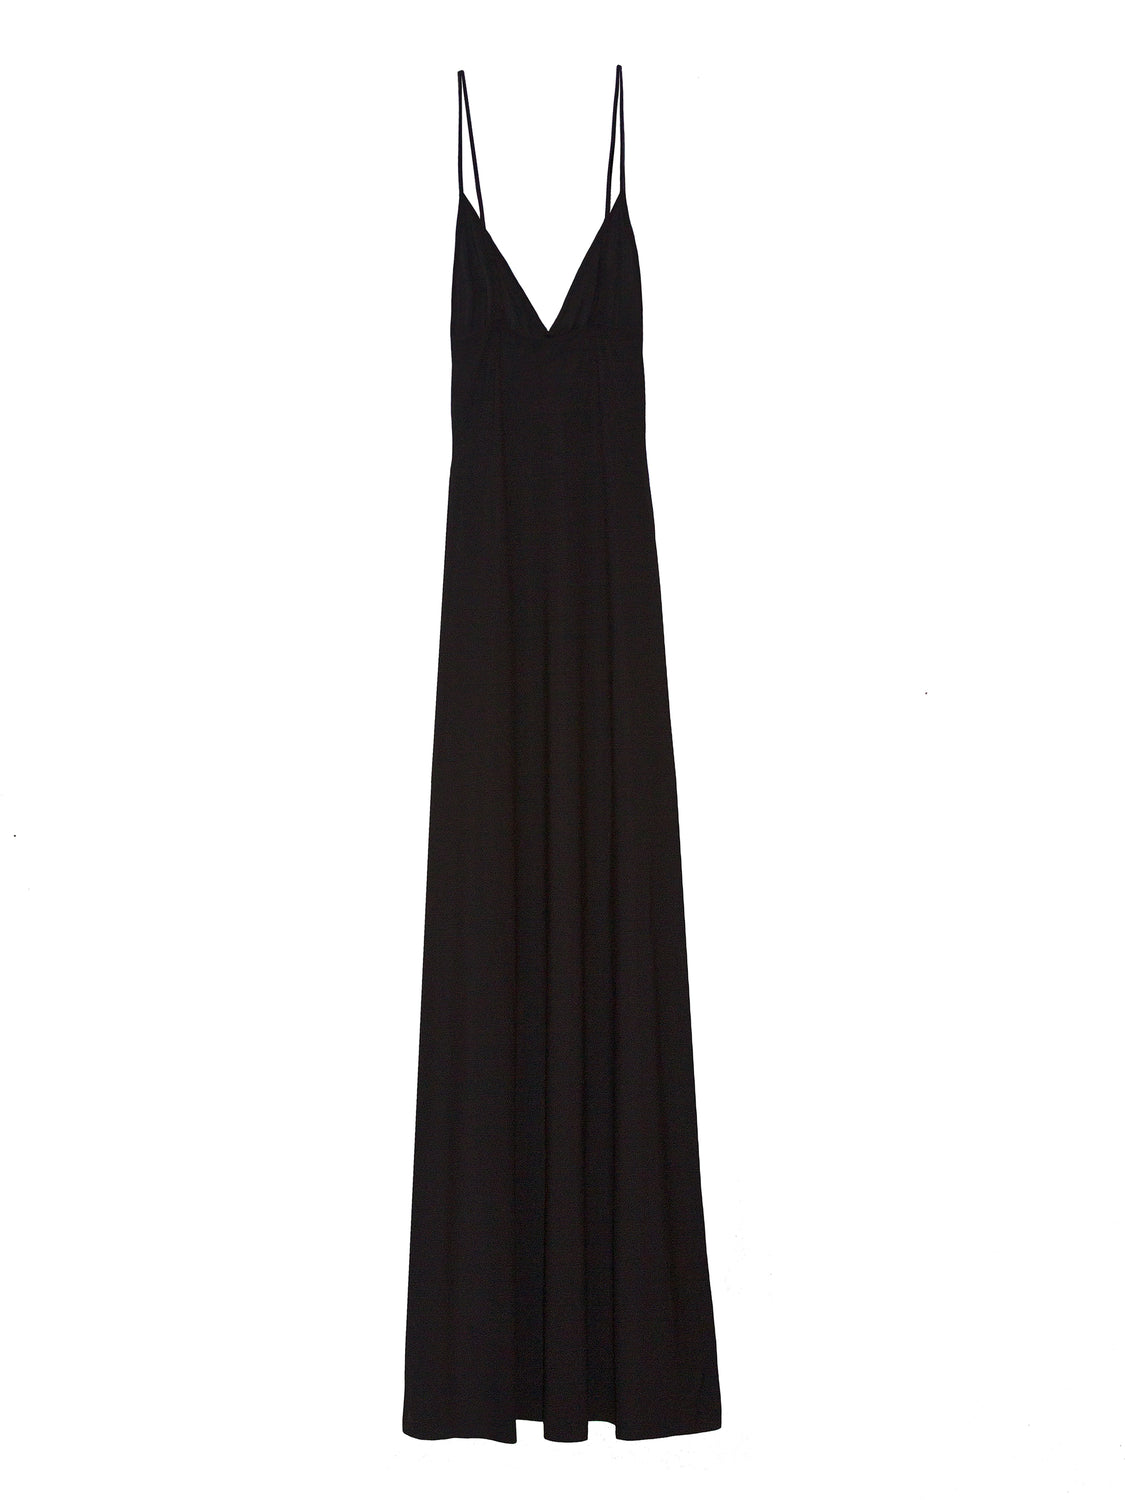 Super stretch 90's inspired jersey slip dress with adjustable straps in black